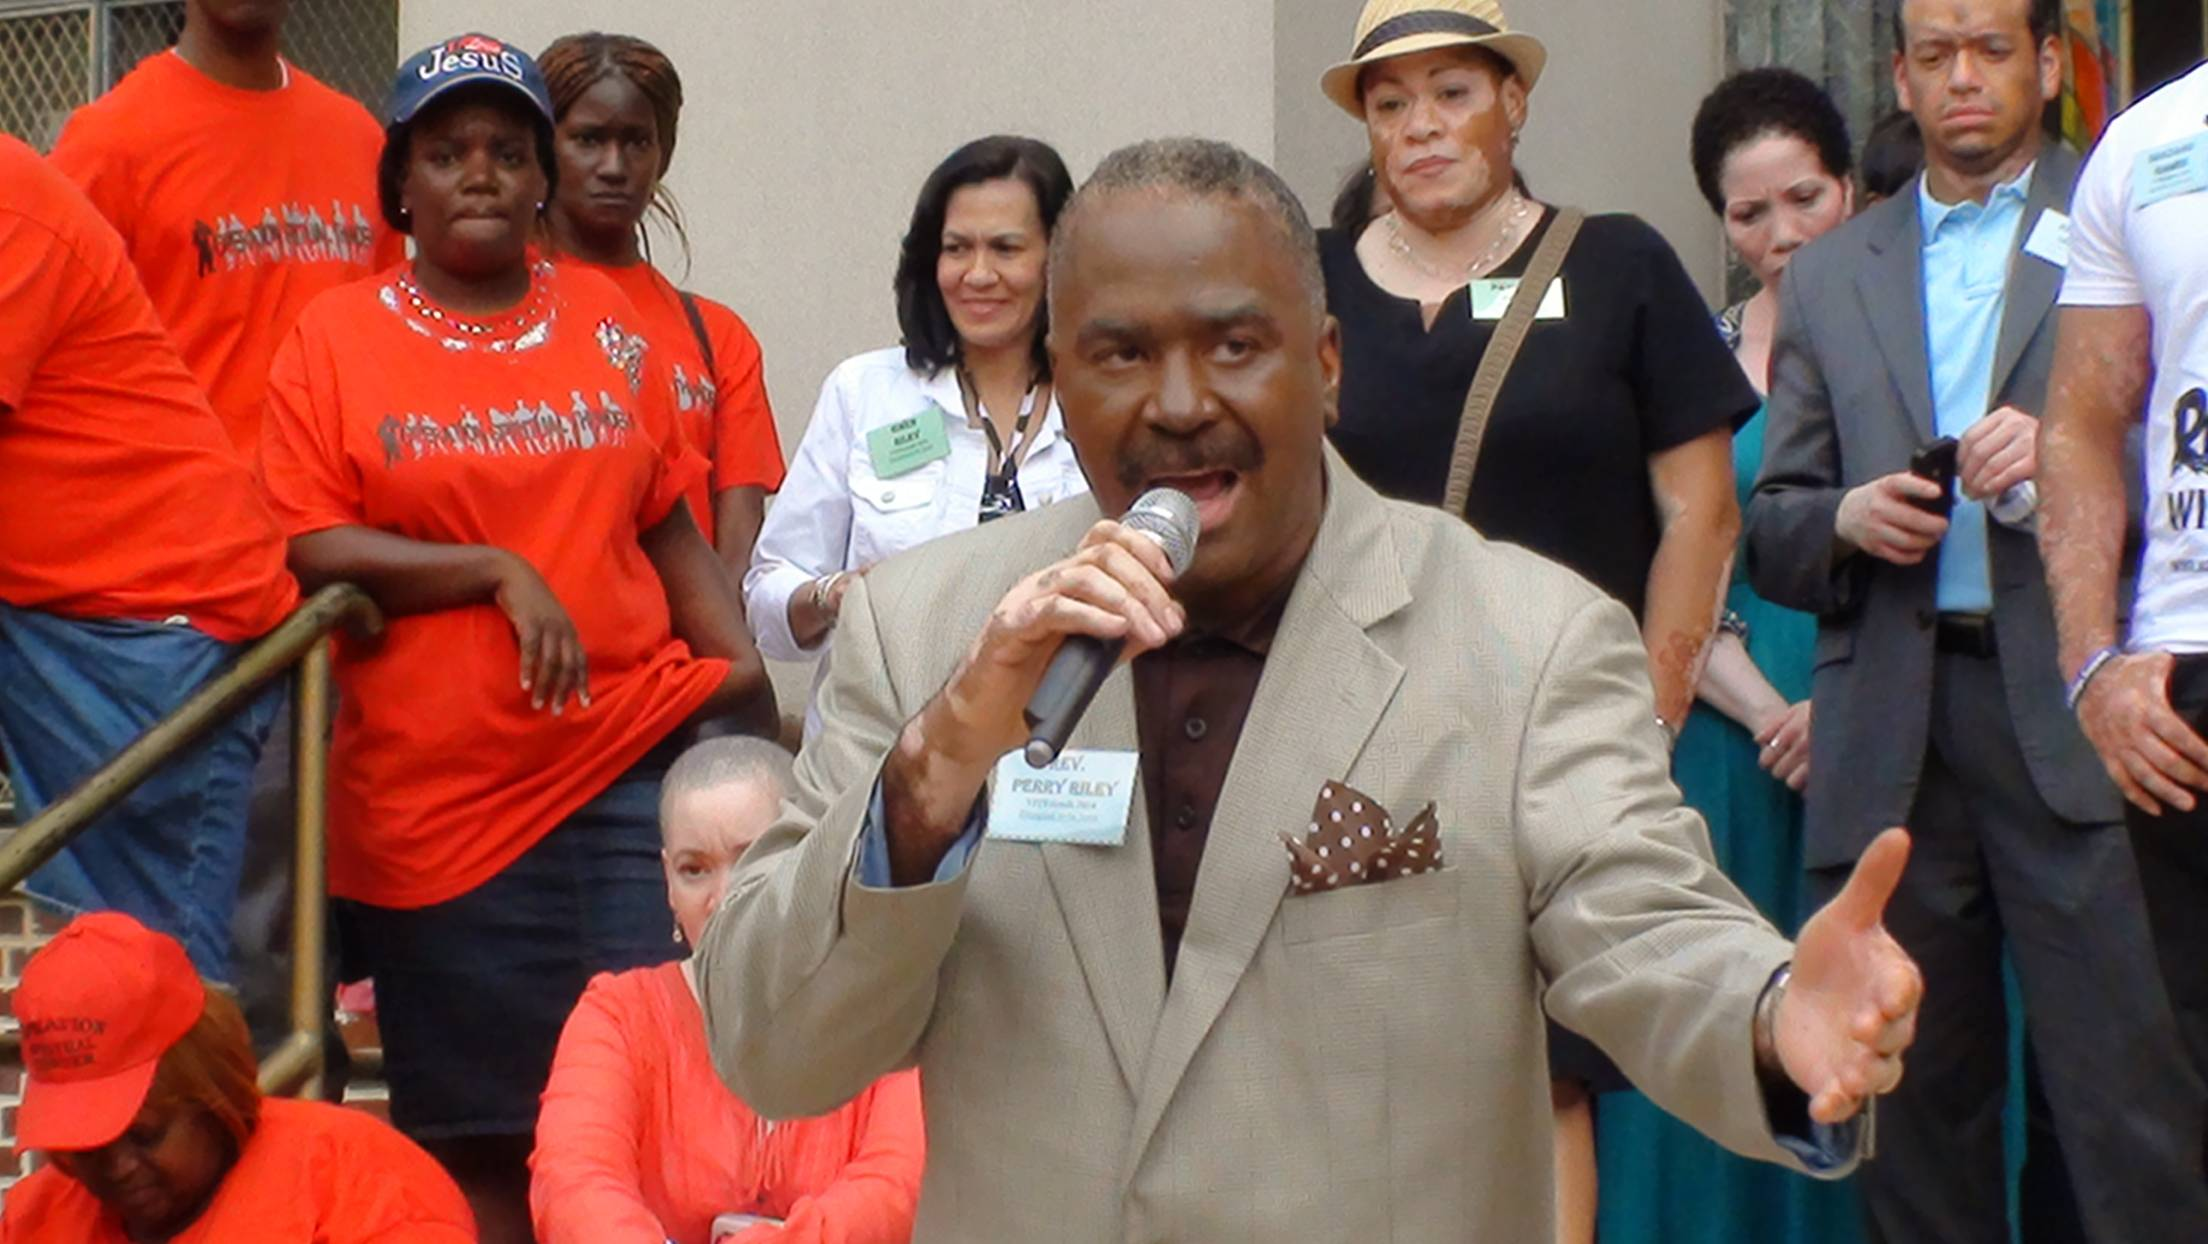 Rev Perry was presented on the steps of the church to the neighborhood